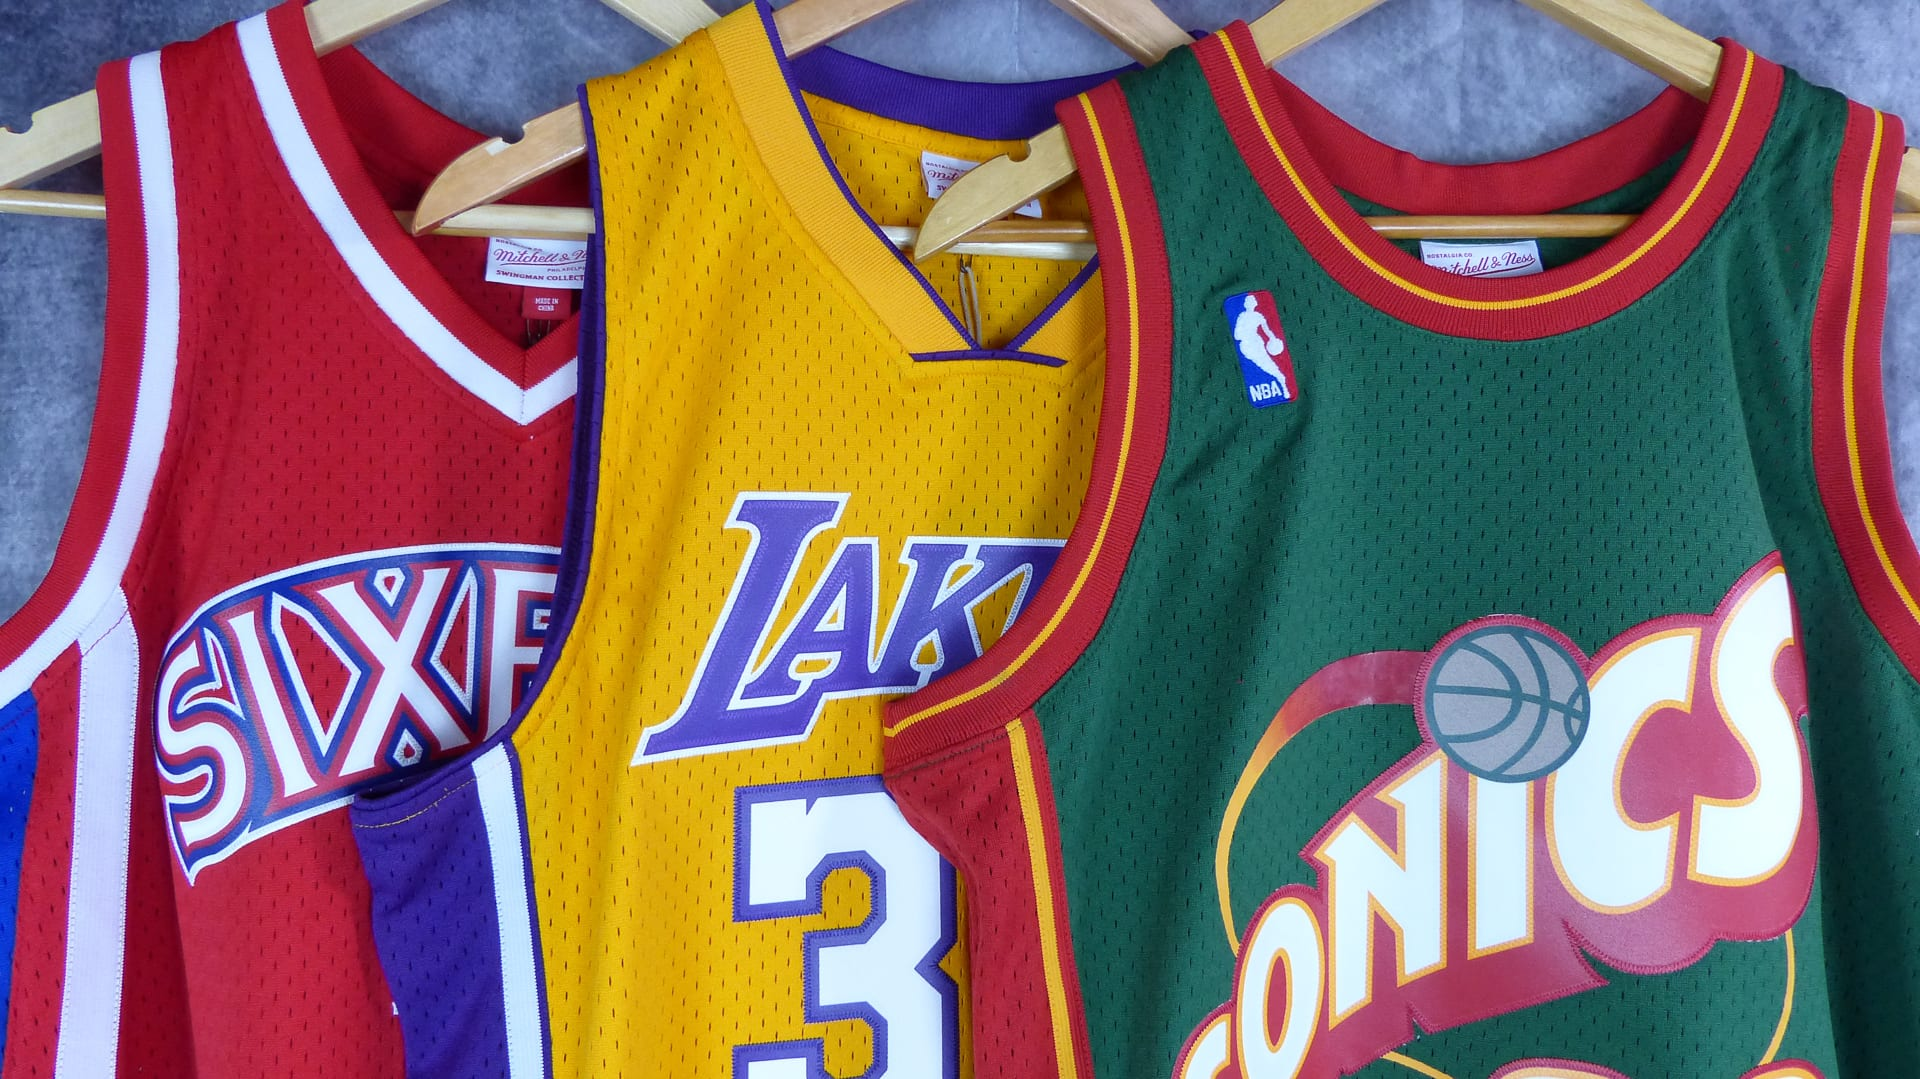 NBA retro. Hardwood Classic. Mitchell and Ness. Legendario, premiun y auténtico. La magia de la NBA de Hall of Fame